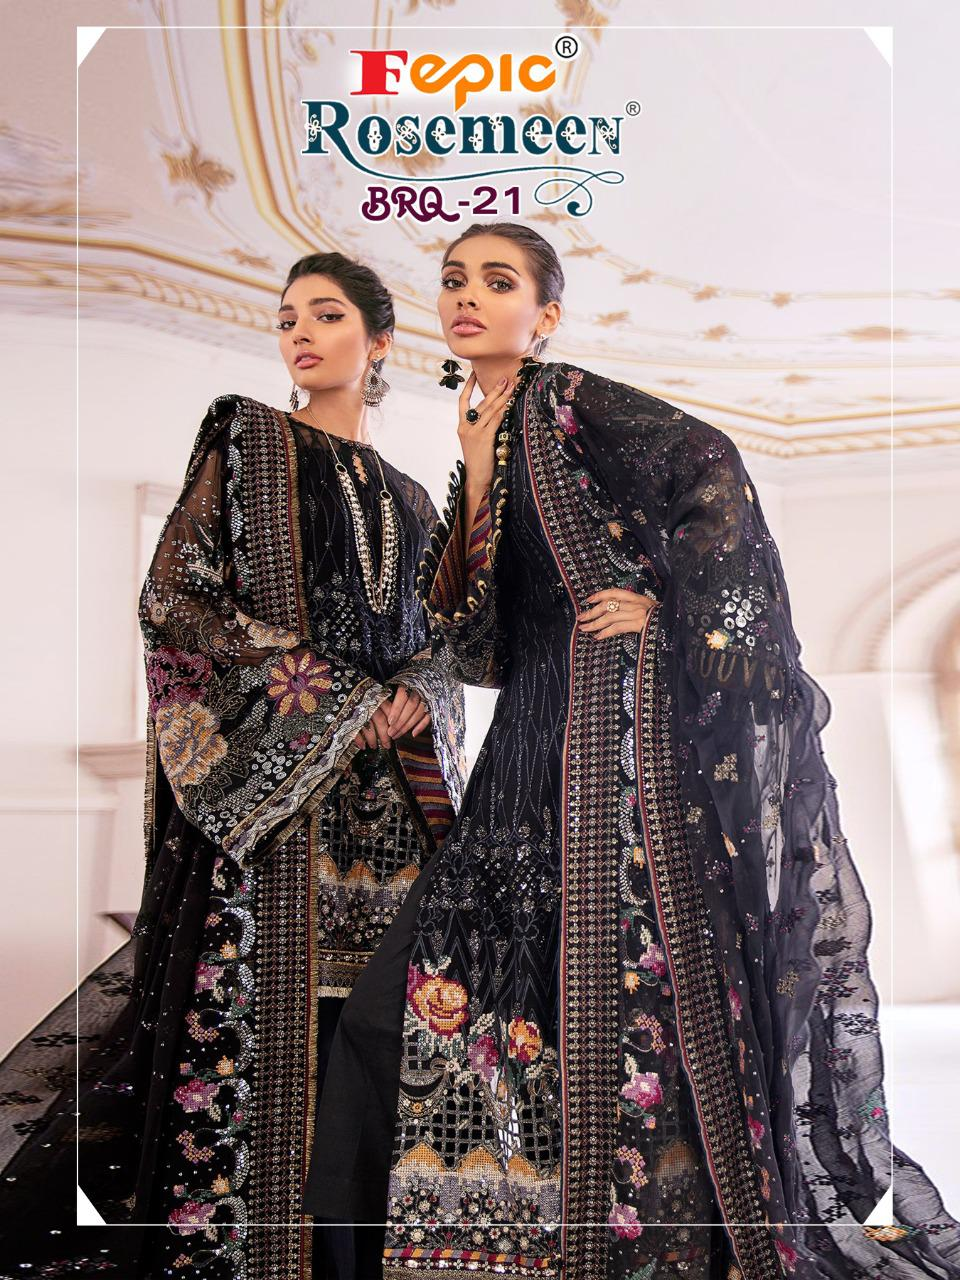 Fepic Rosemeen Brq 21 Designer Georgette/net Heavy Embroidered Pakistani Pattern Suits Wholesale